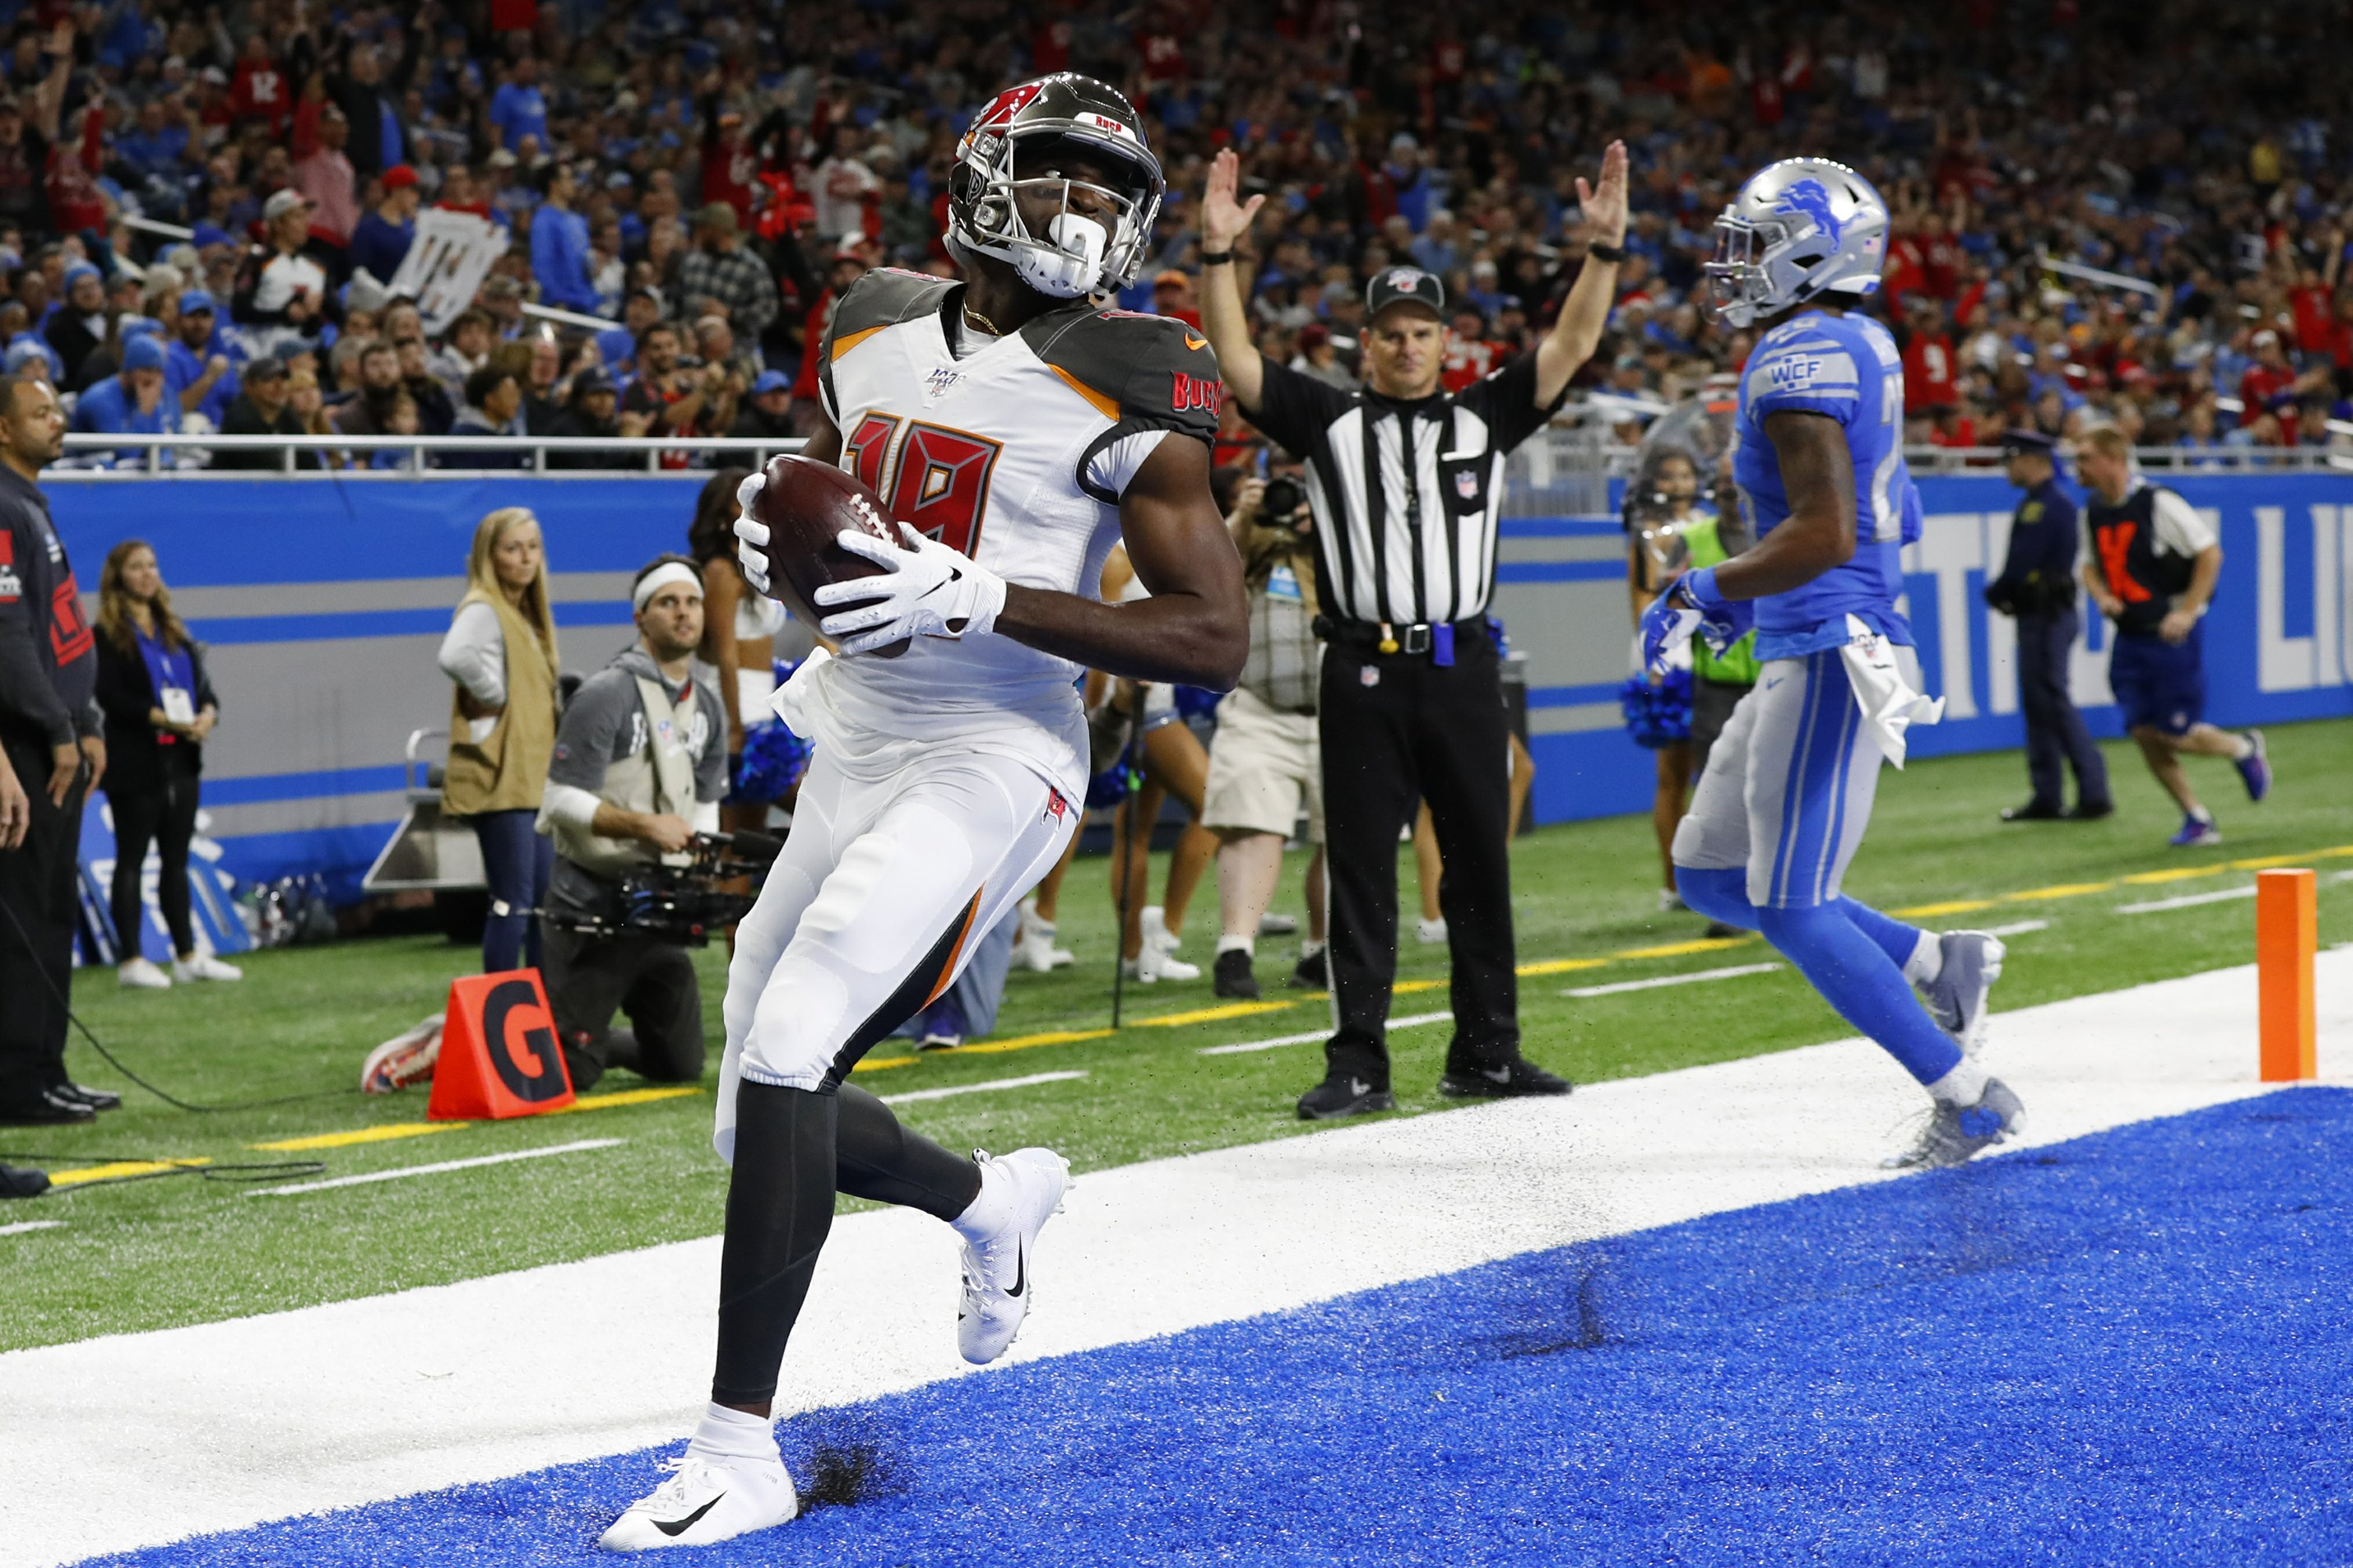 Lions Lose 7th Straight Amid Dreary Home Atmosphere